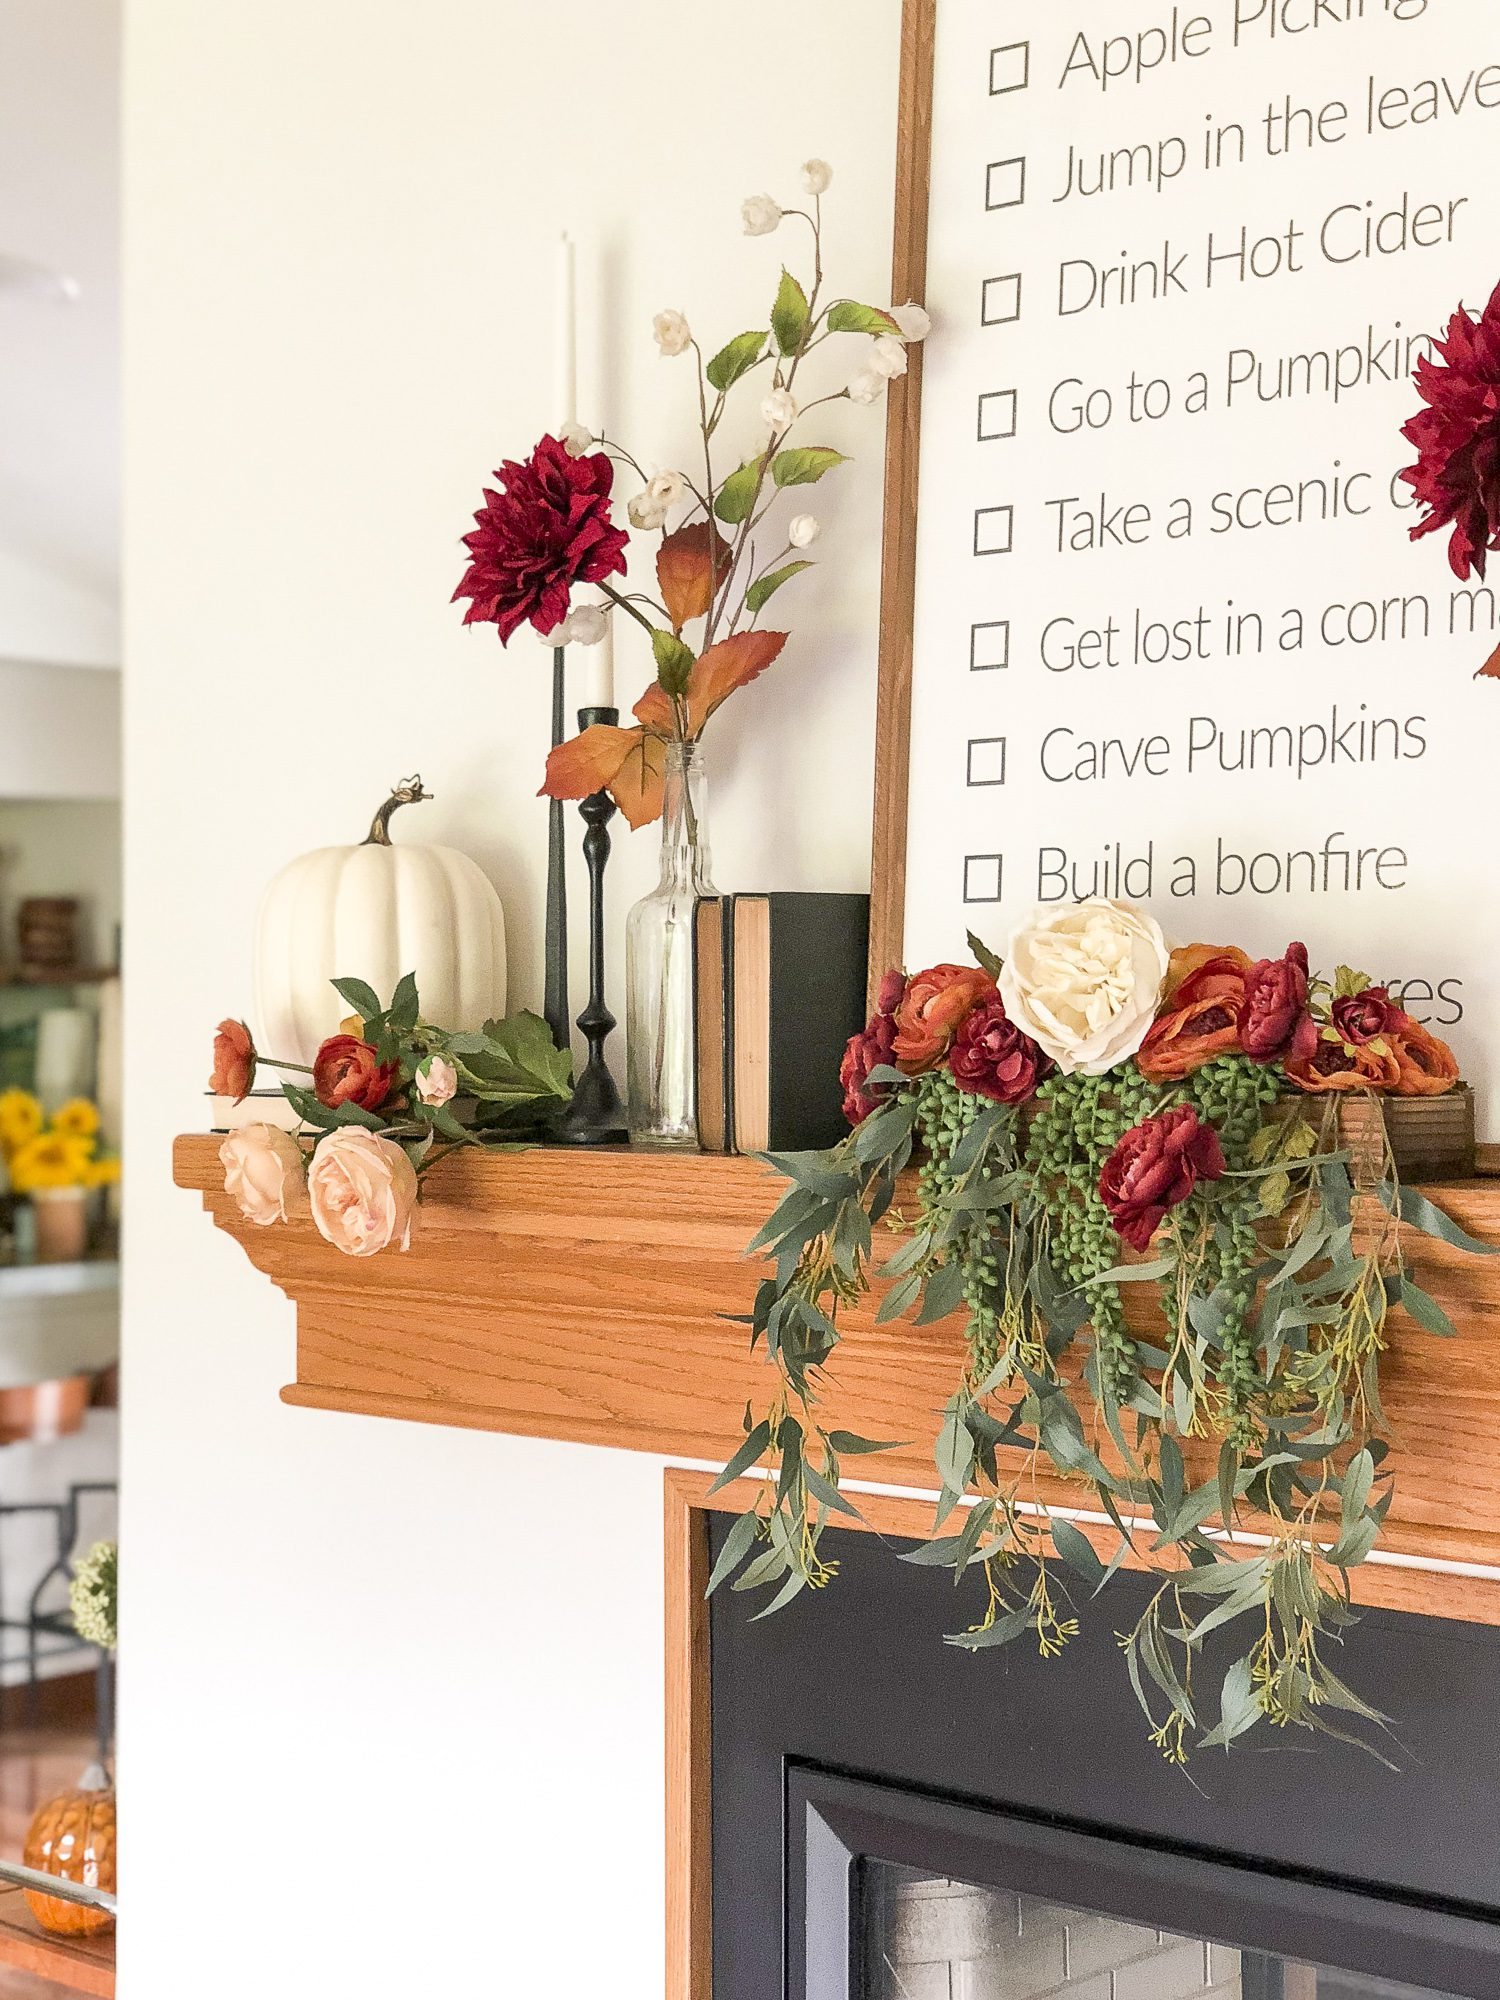 Do you love the vintage farmhouse style? Read more to see how I designed my farmhouse mantel decor with a touch of vintage and romance added in.